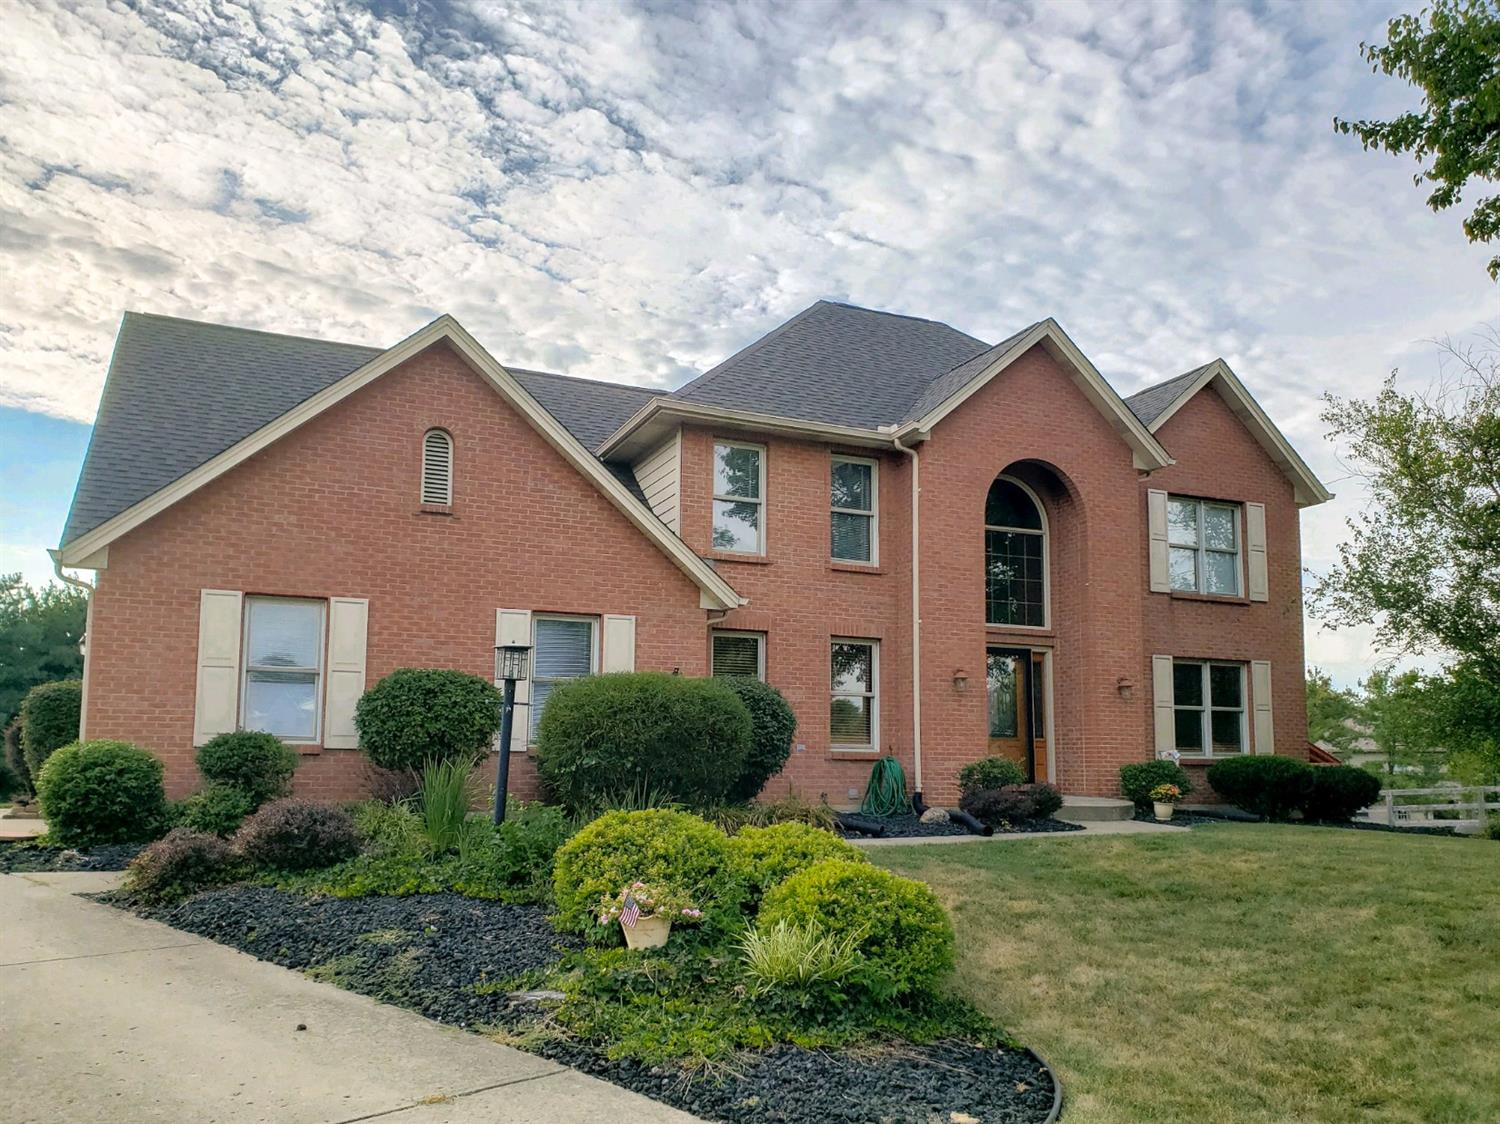 Property for sale at 7169 Brightwaters Court, Liberty Twp,  Ohio 45011